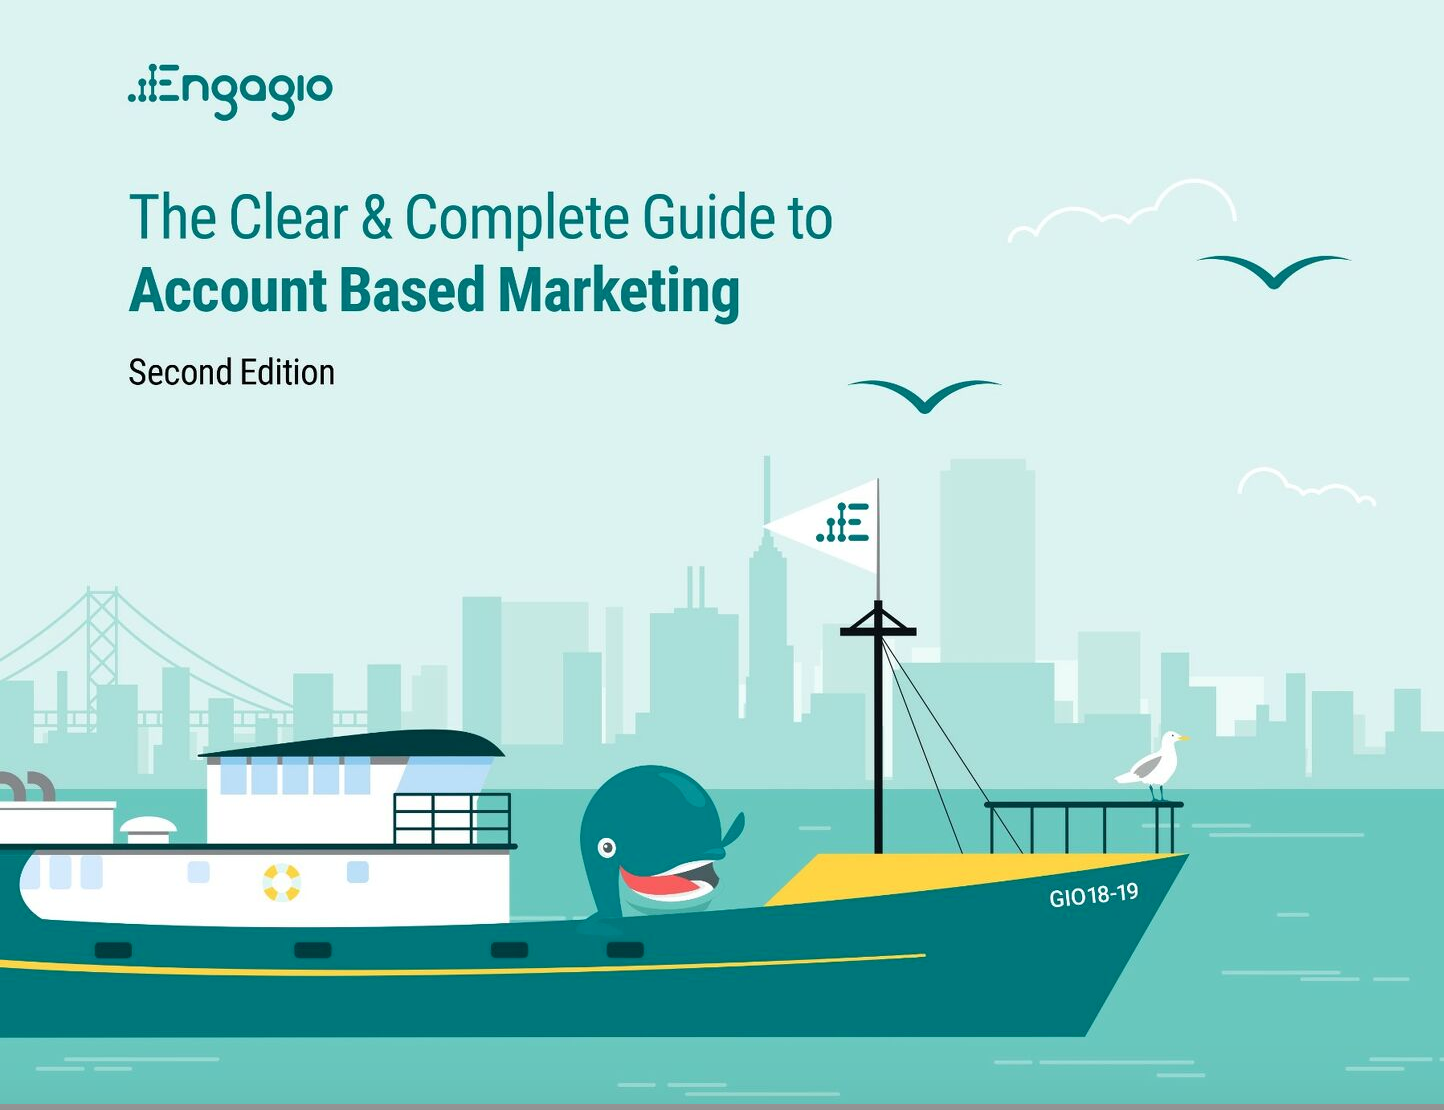 The Clear and Complete Guide to Account Based Marketing